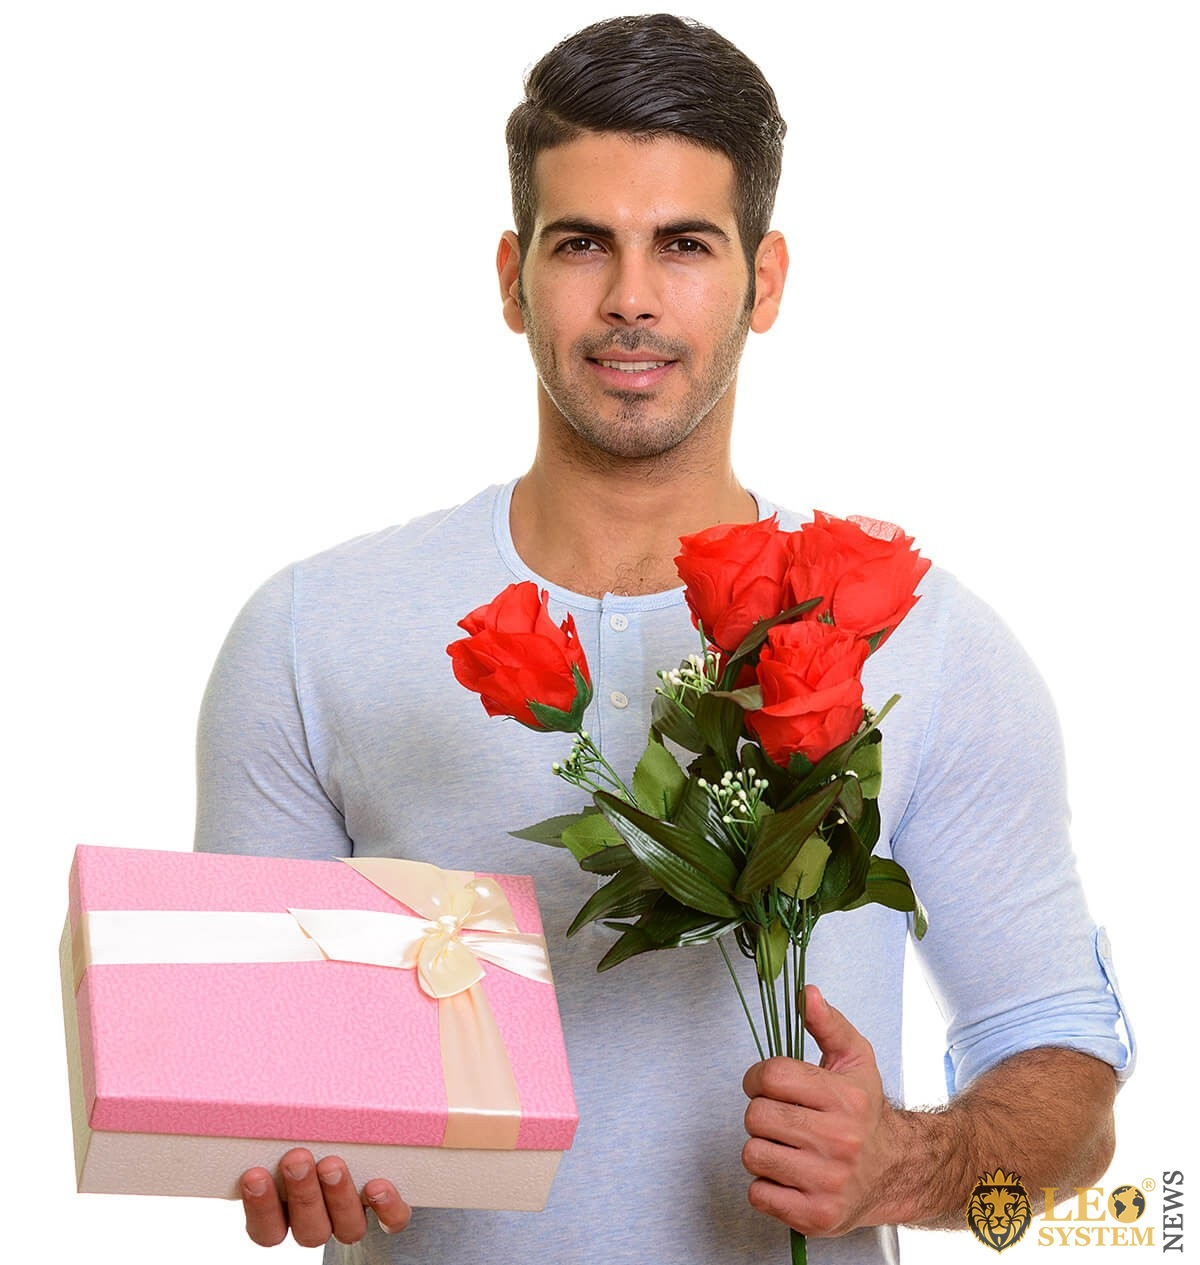 A man with flowers and a gift for his woman